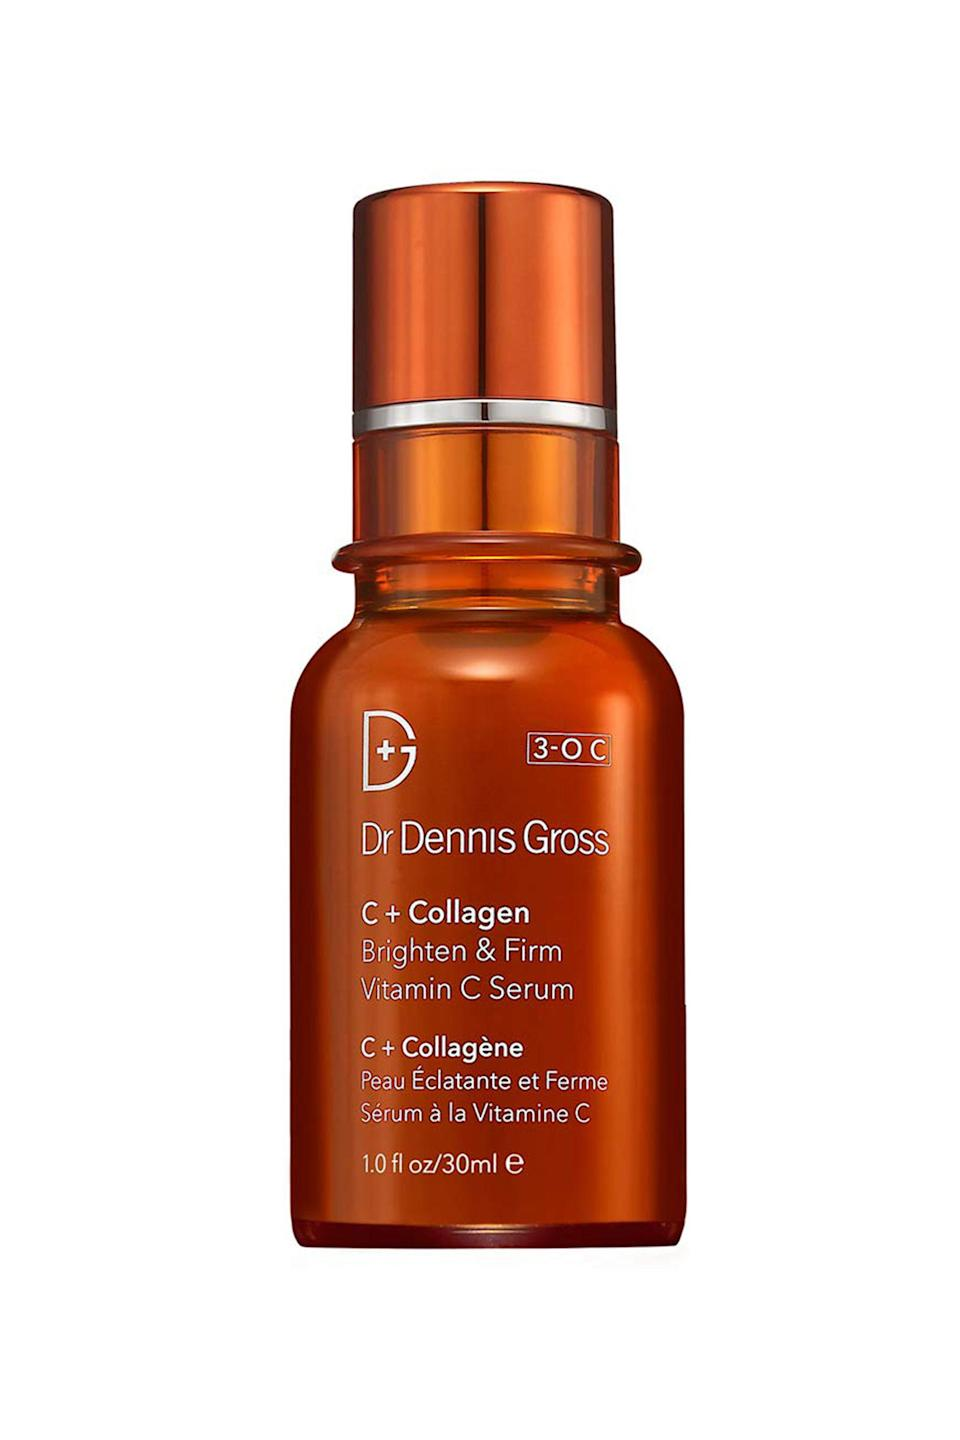 "<p><strong>Dr. Dennis Gross Skincare</strong></p><p>sephora.com</p><p><strong>$78.00</strong></p><p><a href=""https://go.redirectingat.com?id=74968X1596630&url=https%3A%2F%2Fwww.sephora.com%2Fproduct%2Fc-collagen-brighten-firm-vitamin-c-serum-P415209&sref=https%3A%2F%2Fwww.redbookmag.com%2Fbeauty%2Fg34658814%2Fface-serum%2F"" rel=""nofollow noopener"" target=""_blank"" data-ylk=""slk:Shop Now"" class=""link rapid-noclick-resp"">Shop Now</a></p><p>Brighten up dull skin by slathering your face with this illuminating gel-serum hybrid packed with potent Vitamin C. It absorbs quickly and leaves behind smoother and more luminous skin</p>"